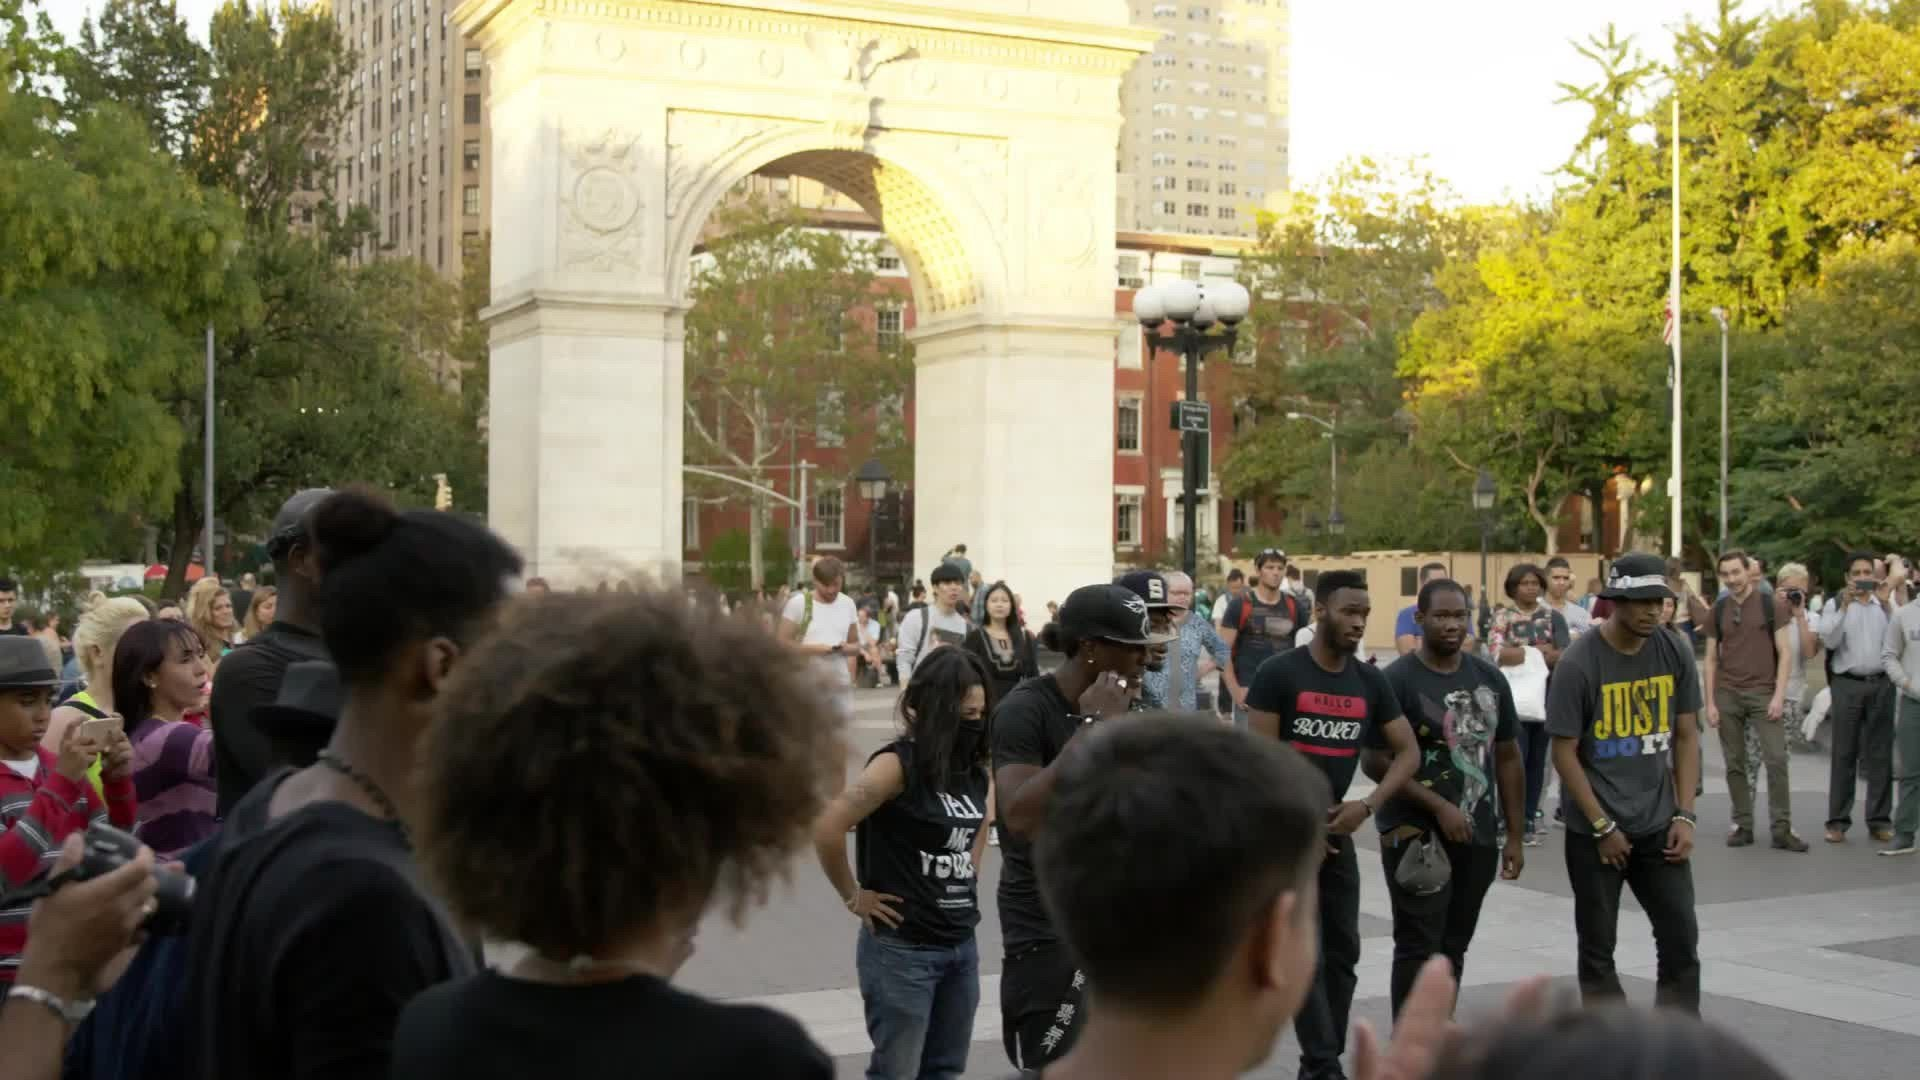 break dancing in Washington Square Park summer breakdancer spinning on hands slow motion 4K NYC